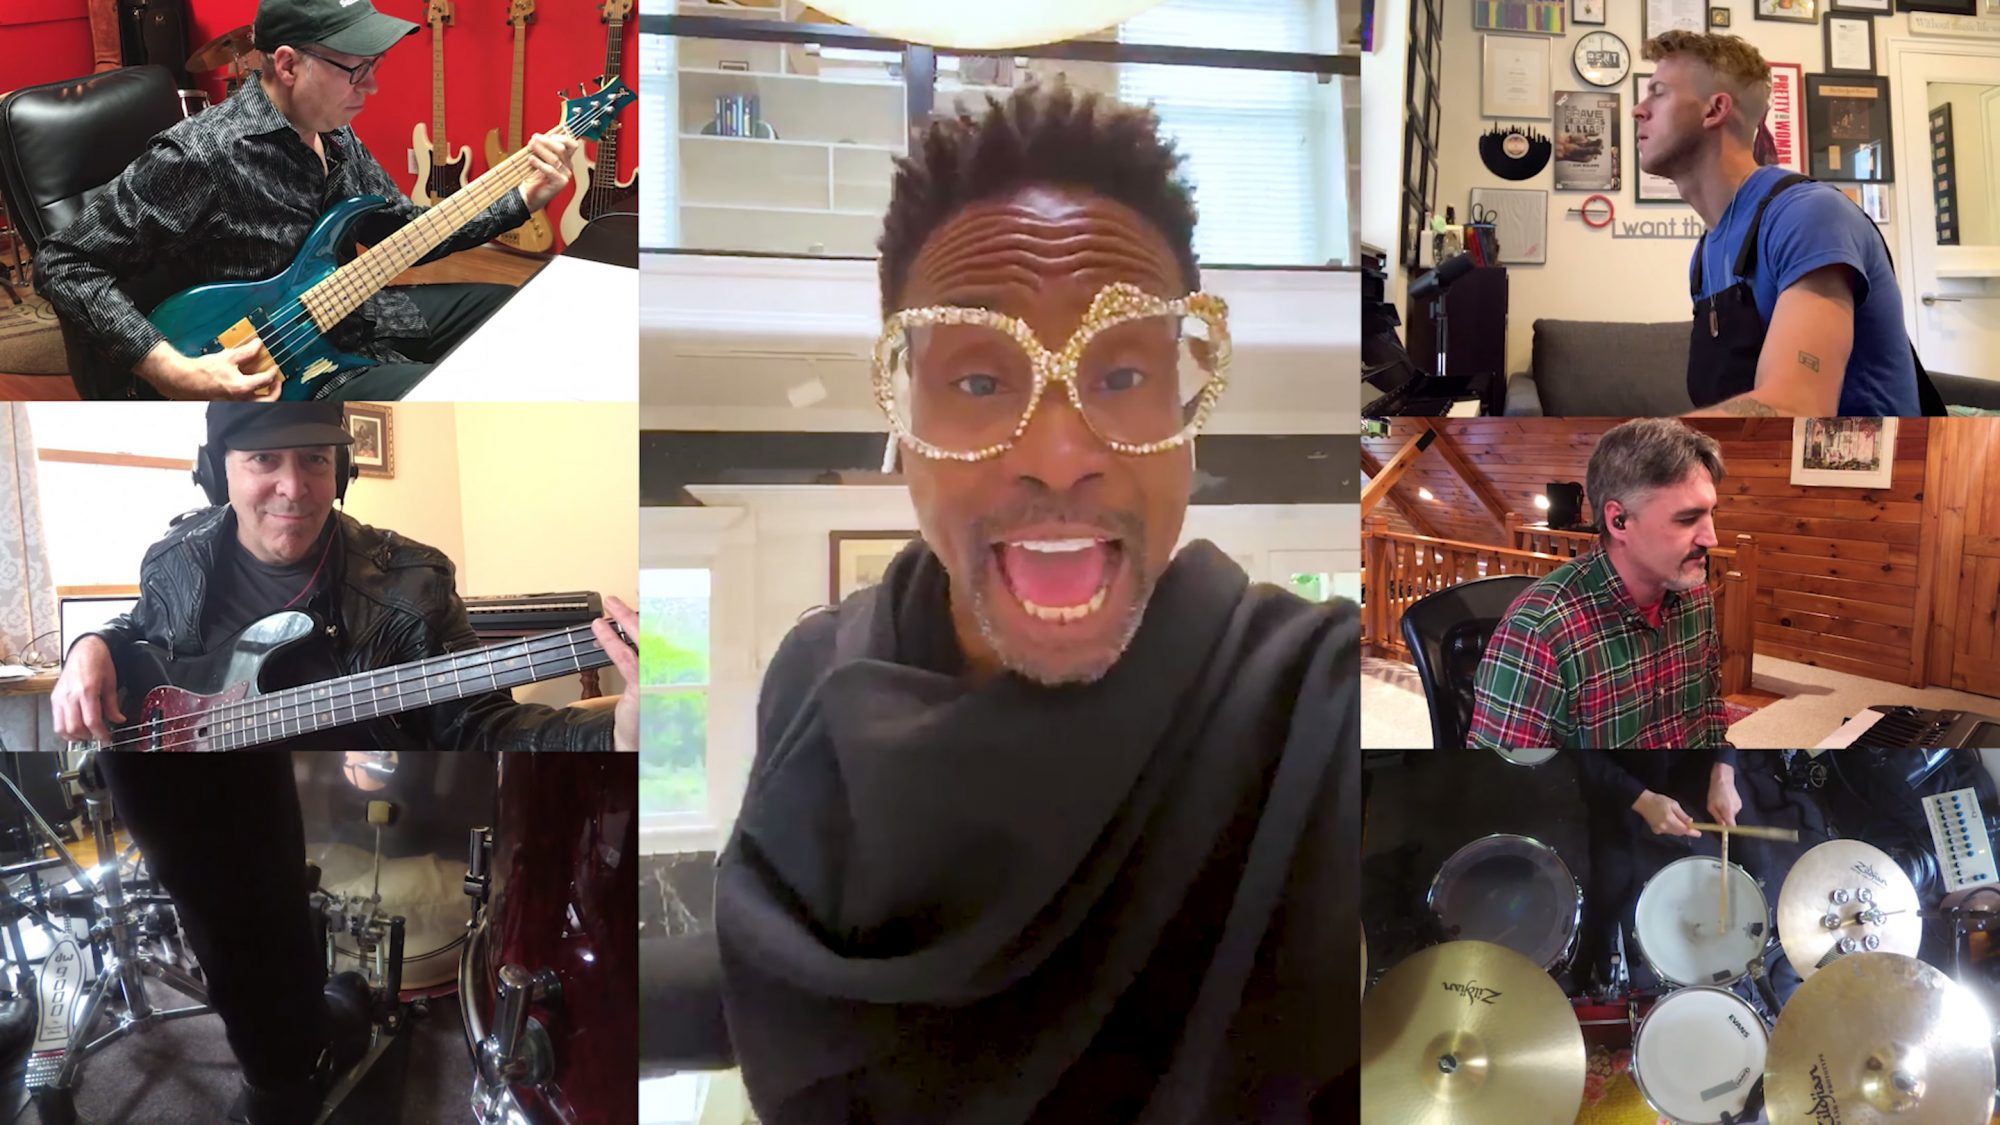 Billy Porter and Kinky Boots cast reunites